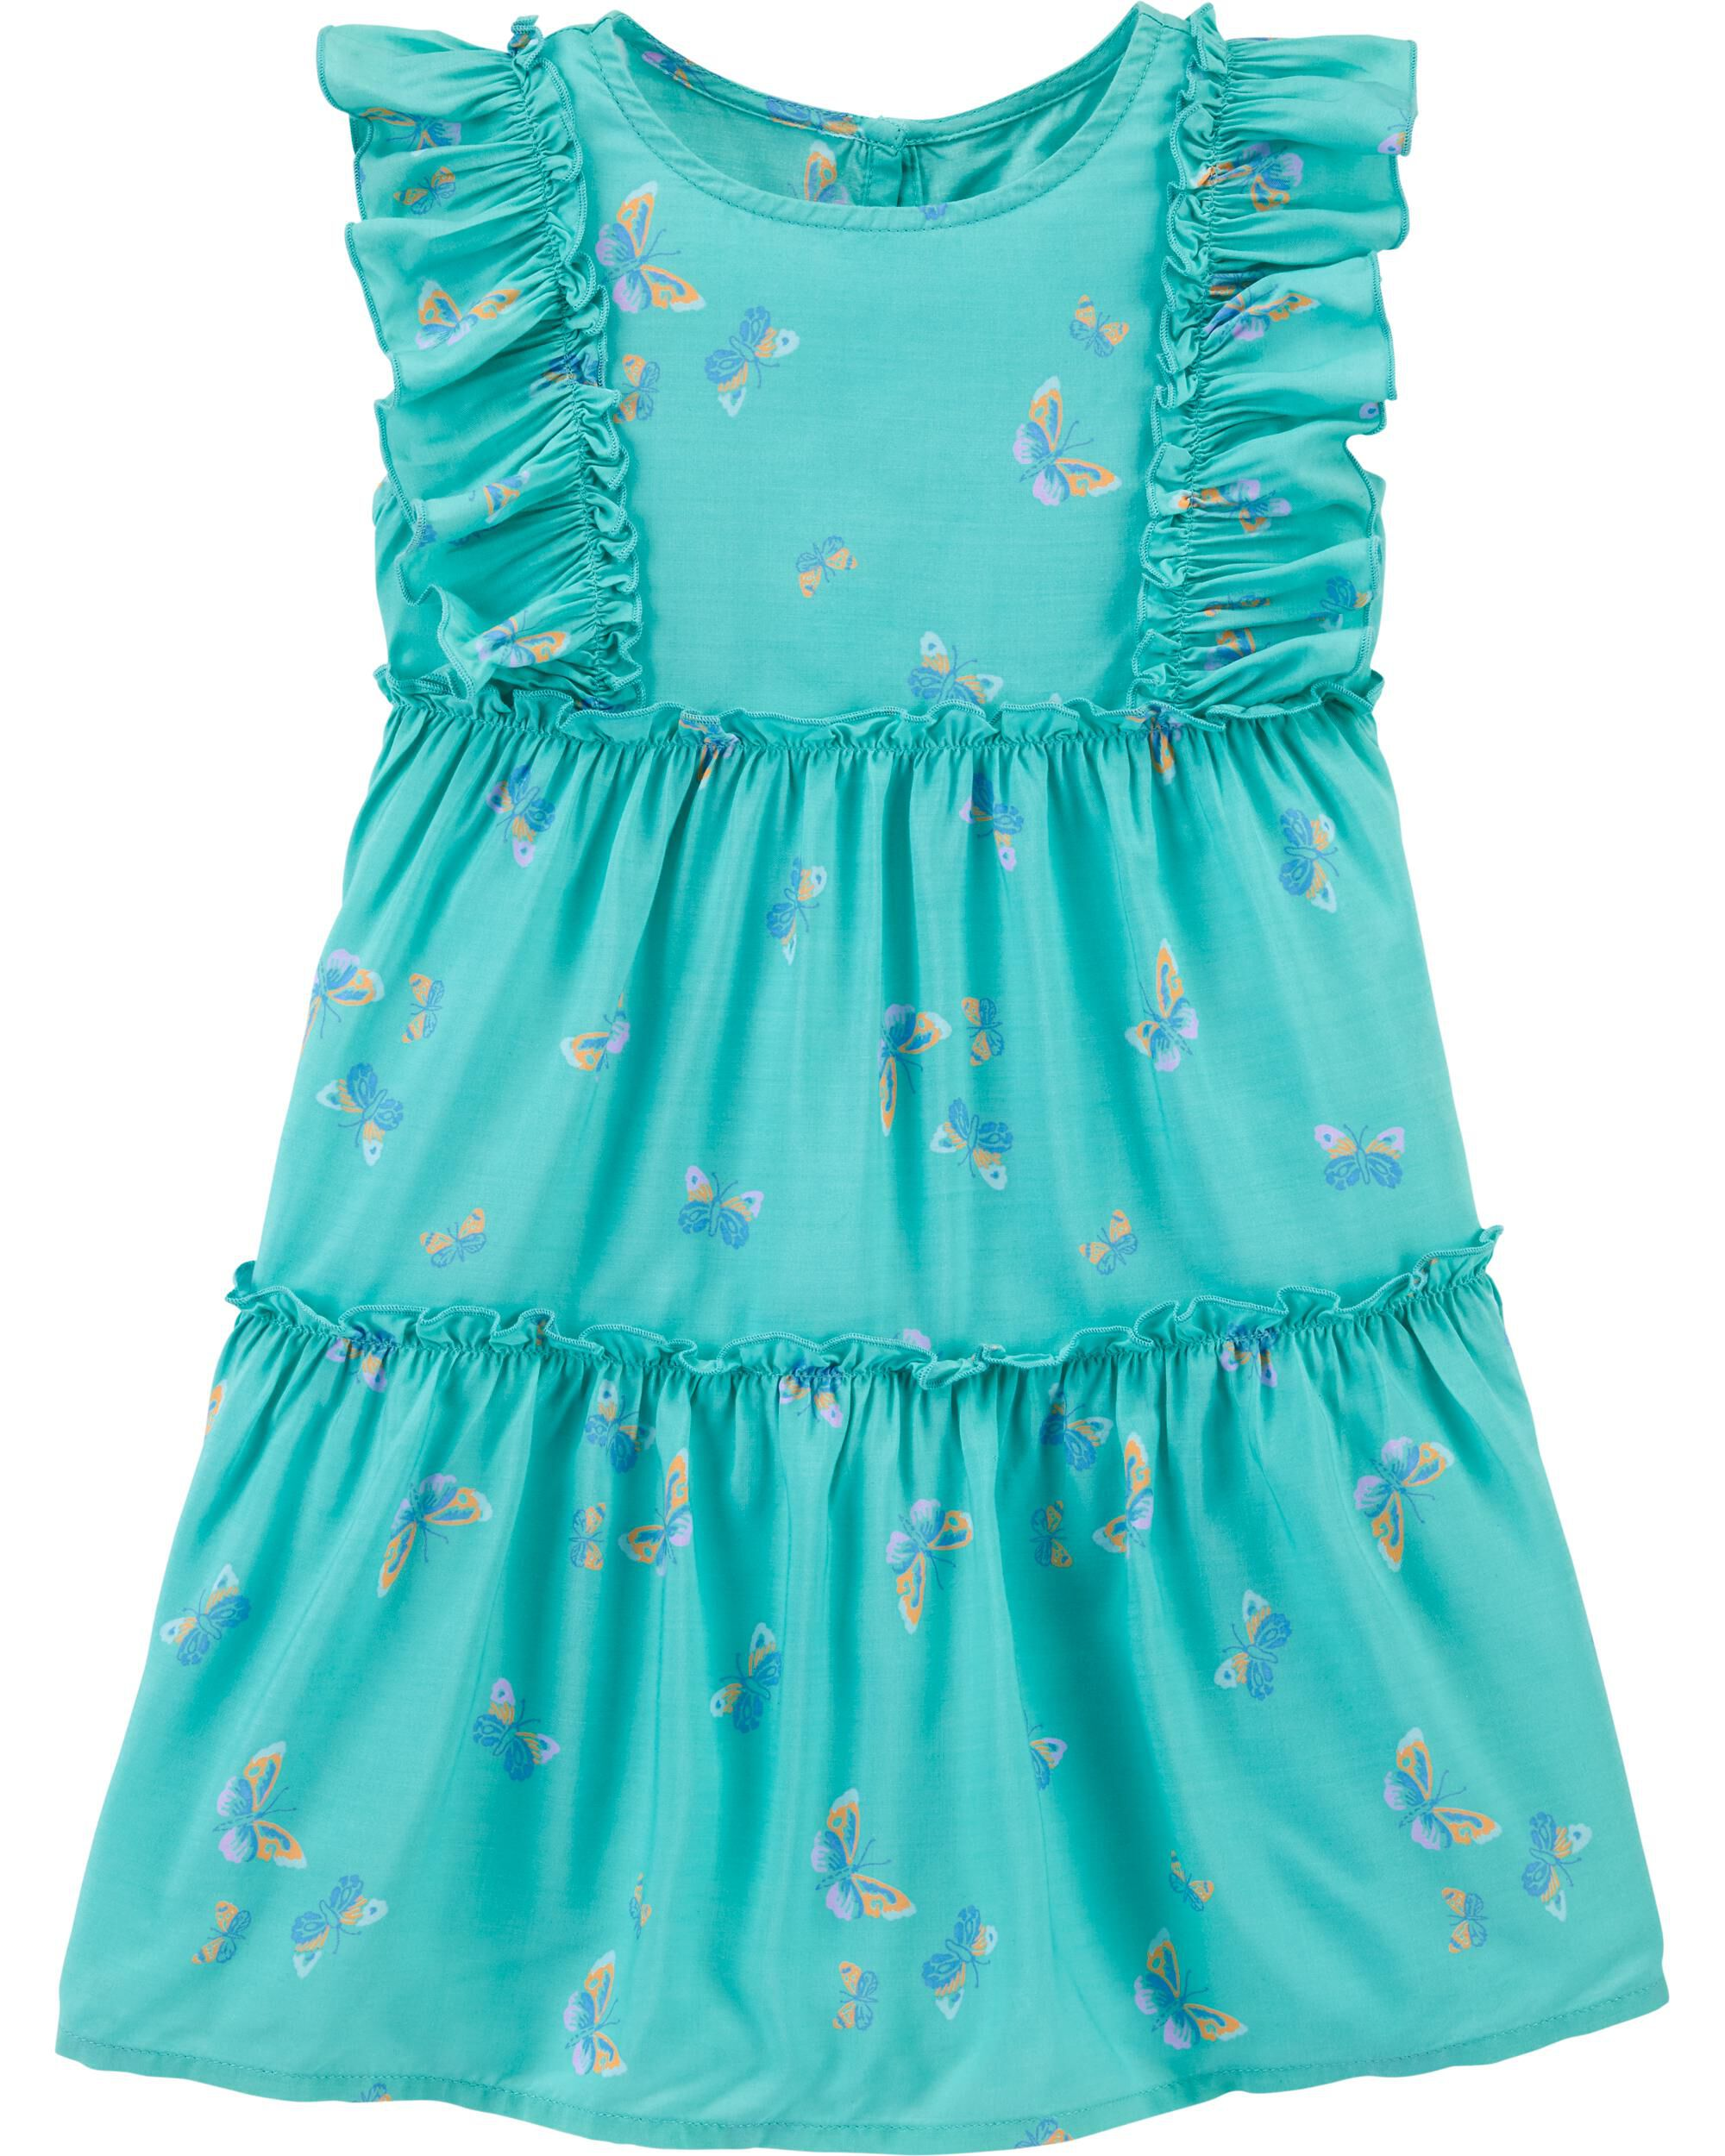 Ruffle Butterfly Dress